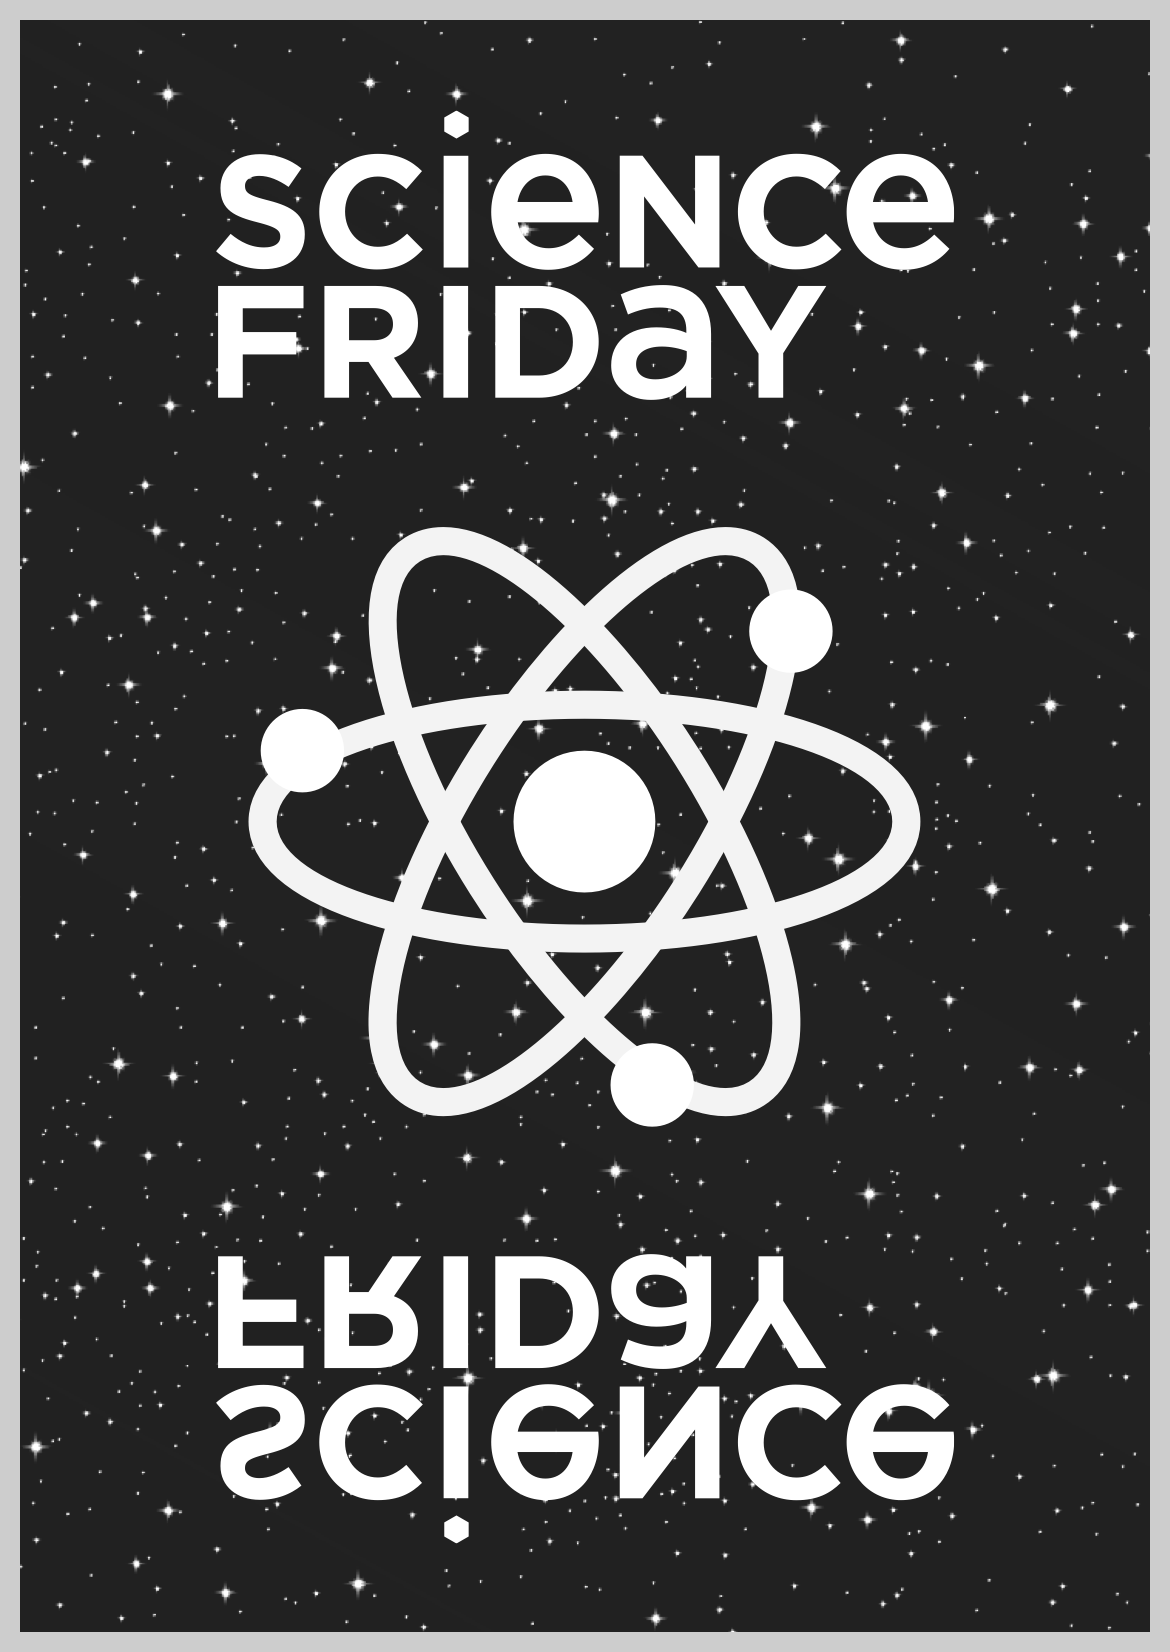 asteroids facts rock friday tweet science